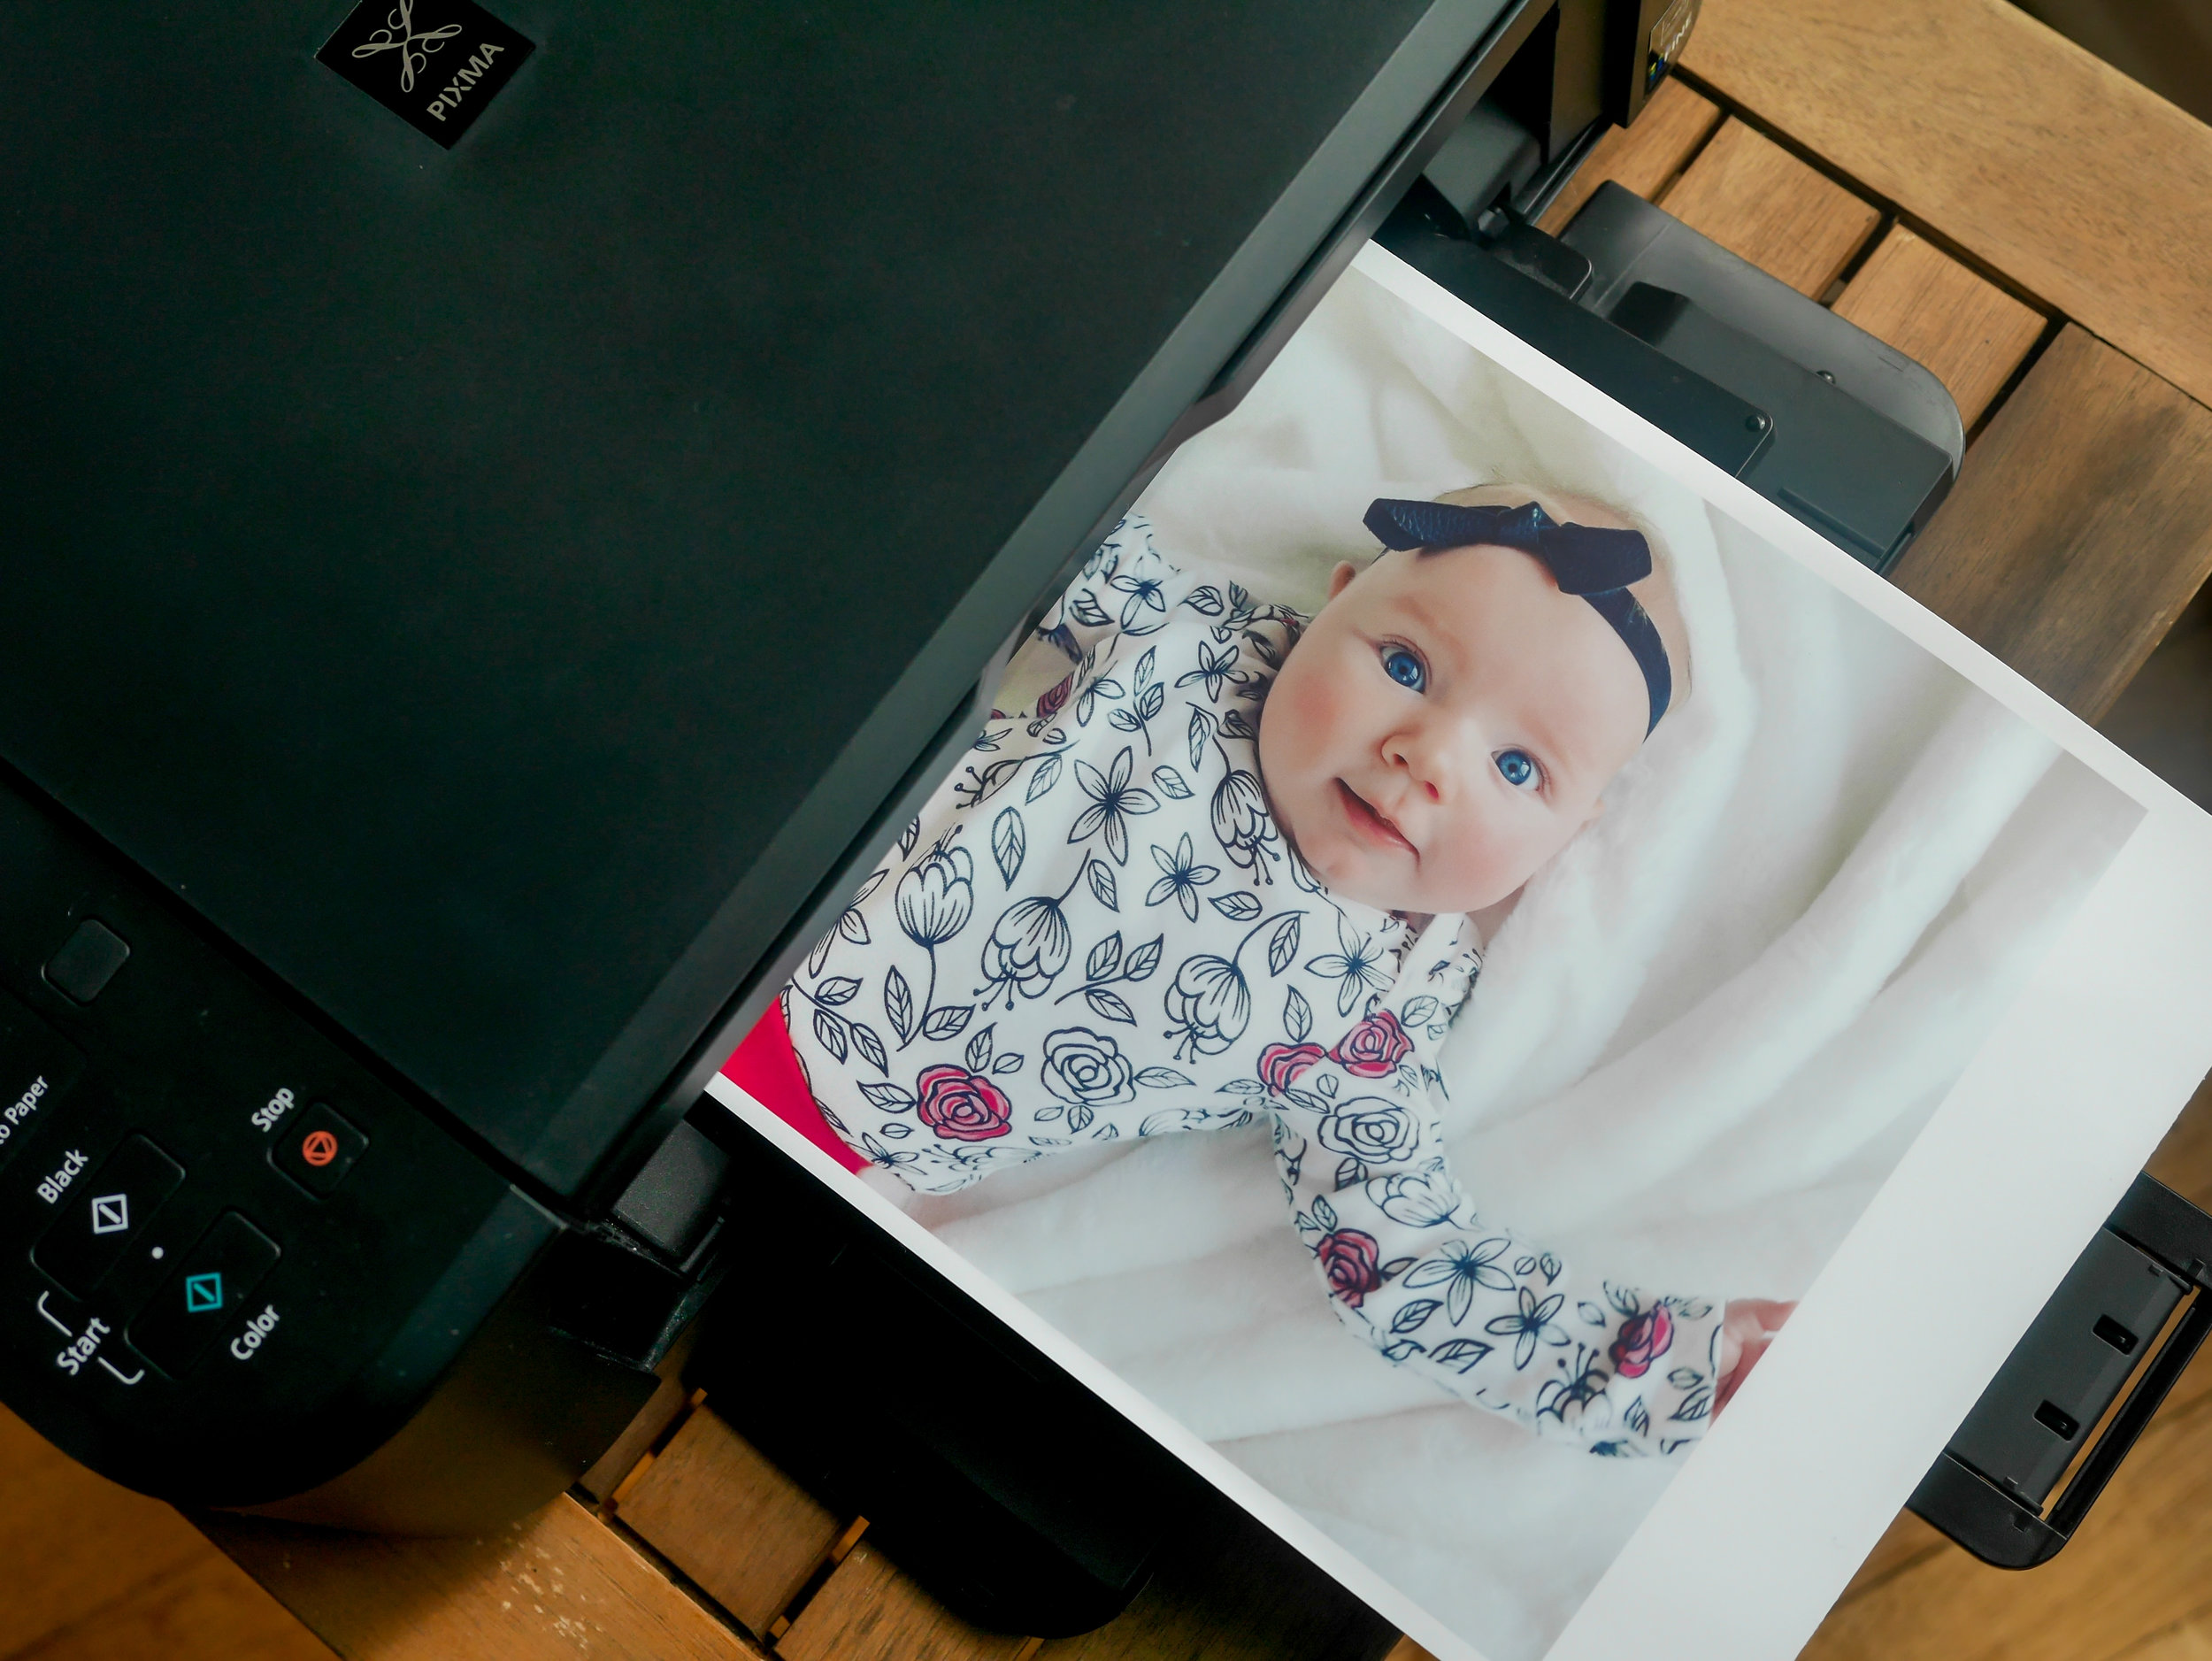 Remember to adjust your printer settings accordingly for gloss or matte photo paper, depending on which you're using.